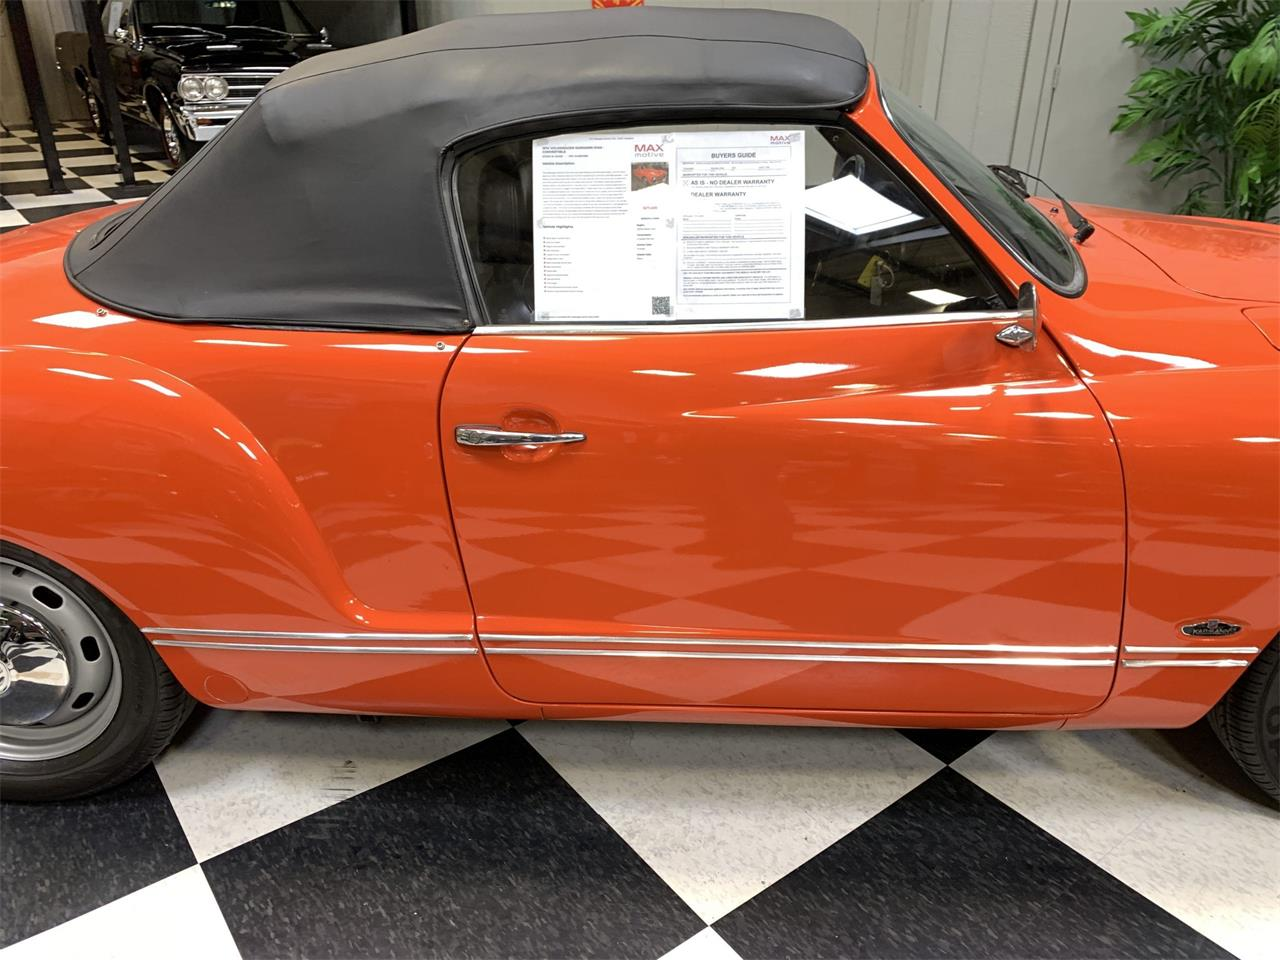 1974 Volkswagen Karmann Ghia for sale in Pittsburgh, PA – photo 14